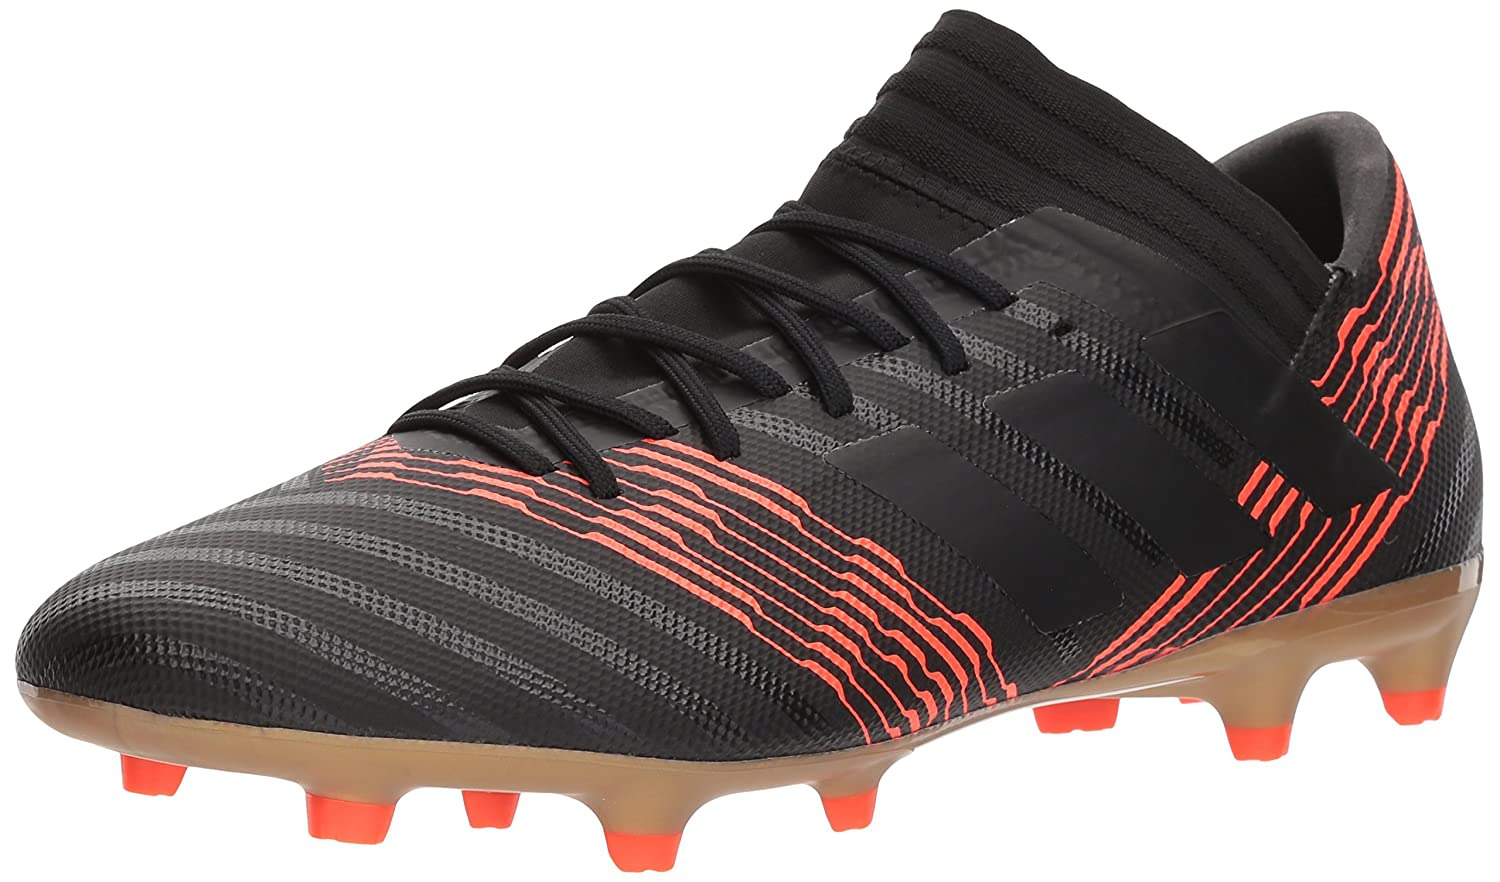 Amazon.com | adidas Performance Mens Nemeziz 17.3 FG Soccer Shoe, Core Black/Core Black/Solar Red, 10.5 M US | Soccer